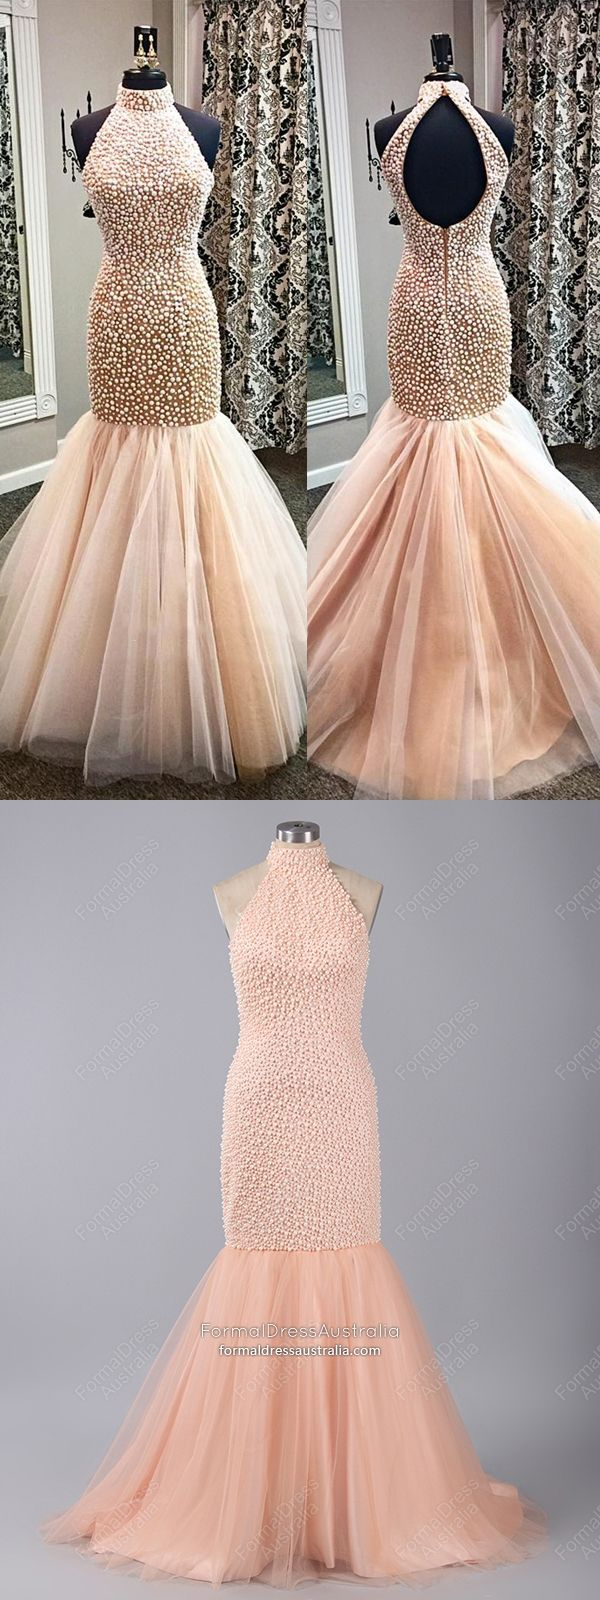 Long formal dresses mermaid pink prom dresses sparkly tulle